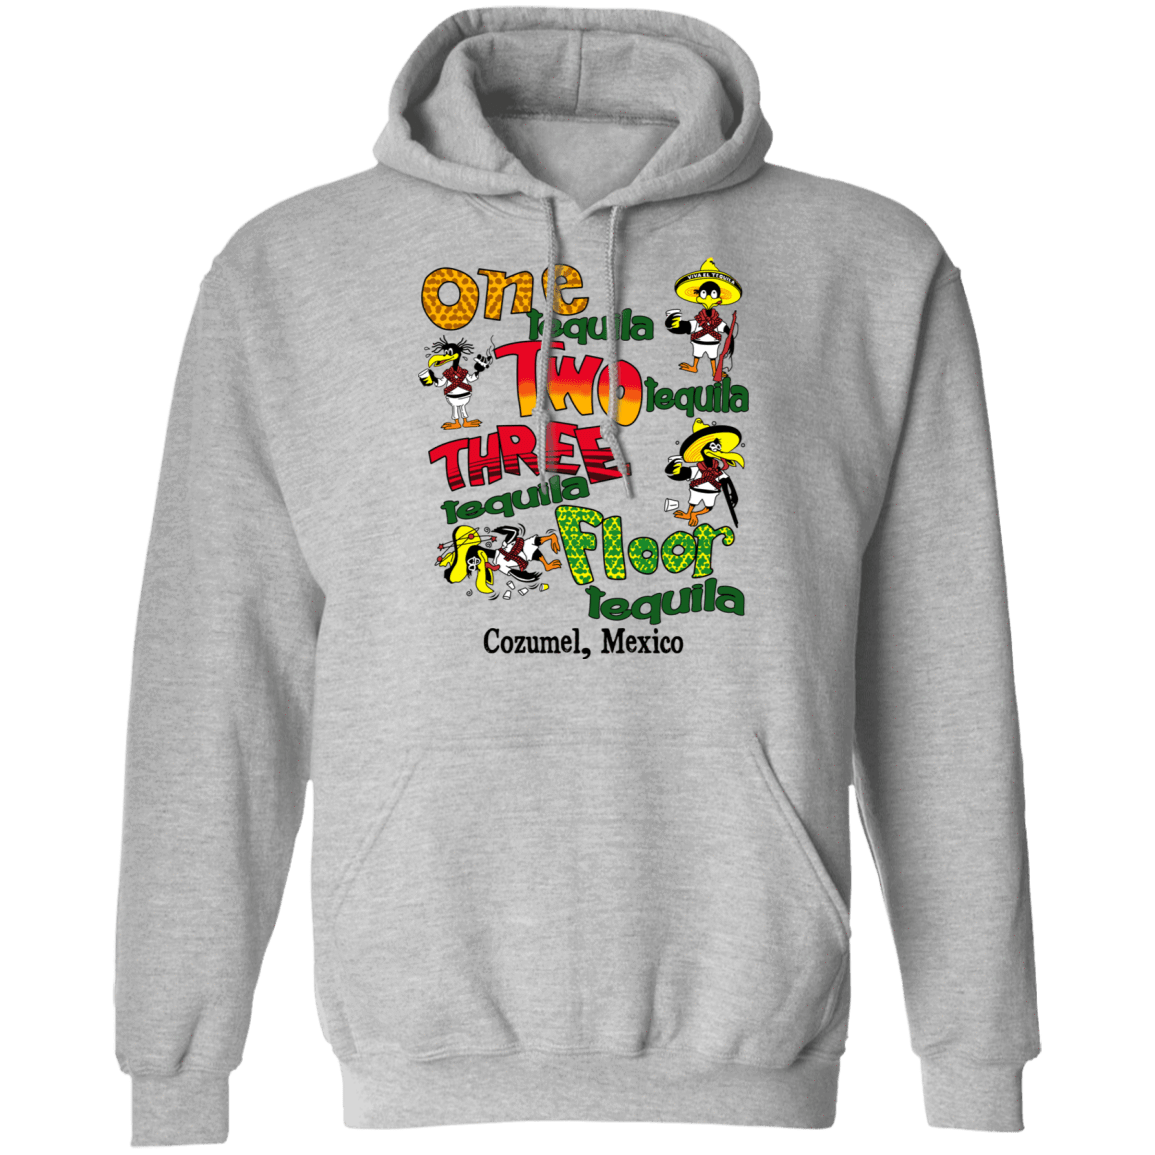 One Tequila Two Tequila Three Tequila Floor Mexico T-Shirts, Hoodies, Tank 541-4741-80779098-23111 - Tee Ript